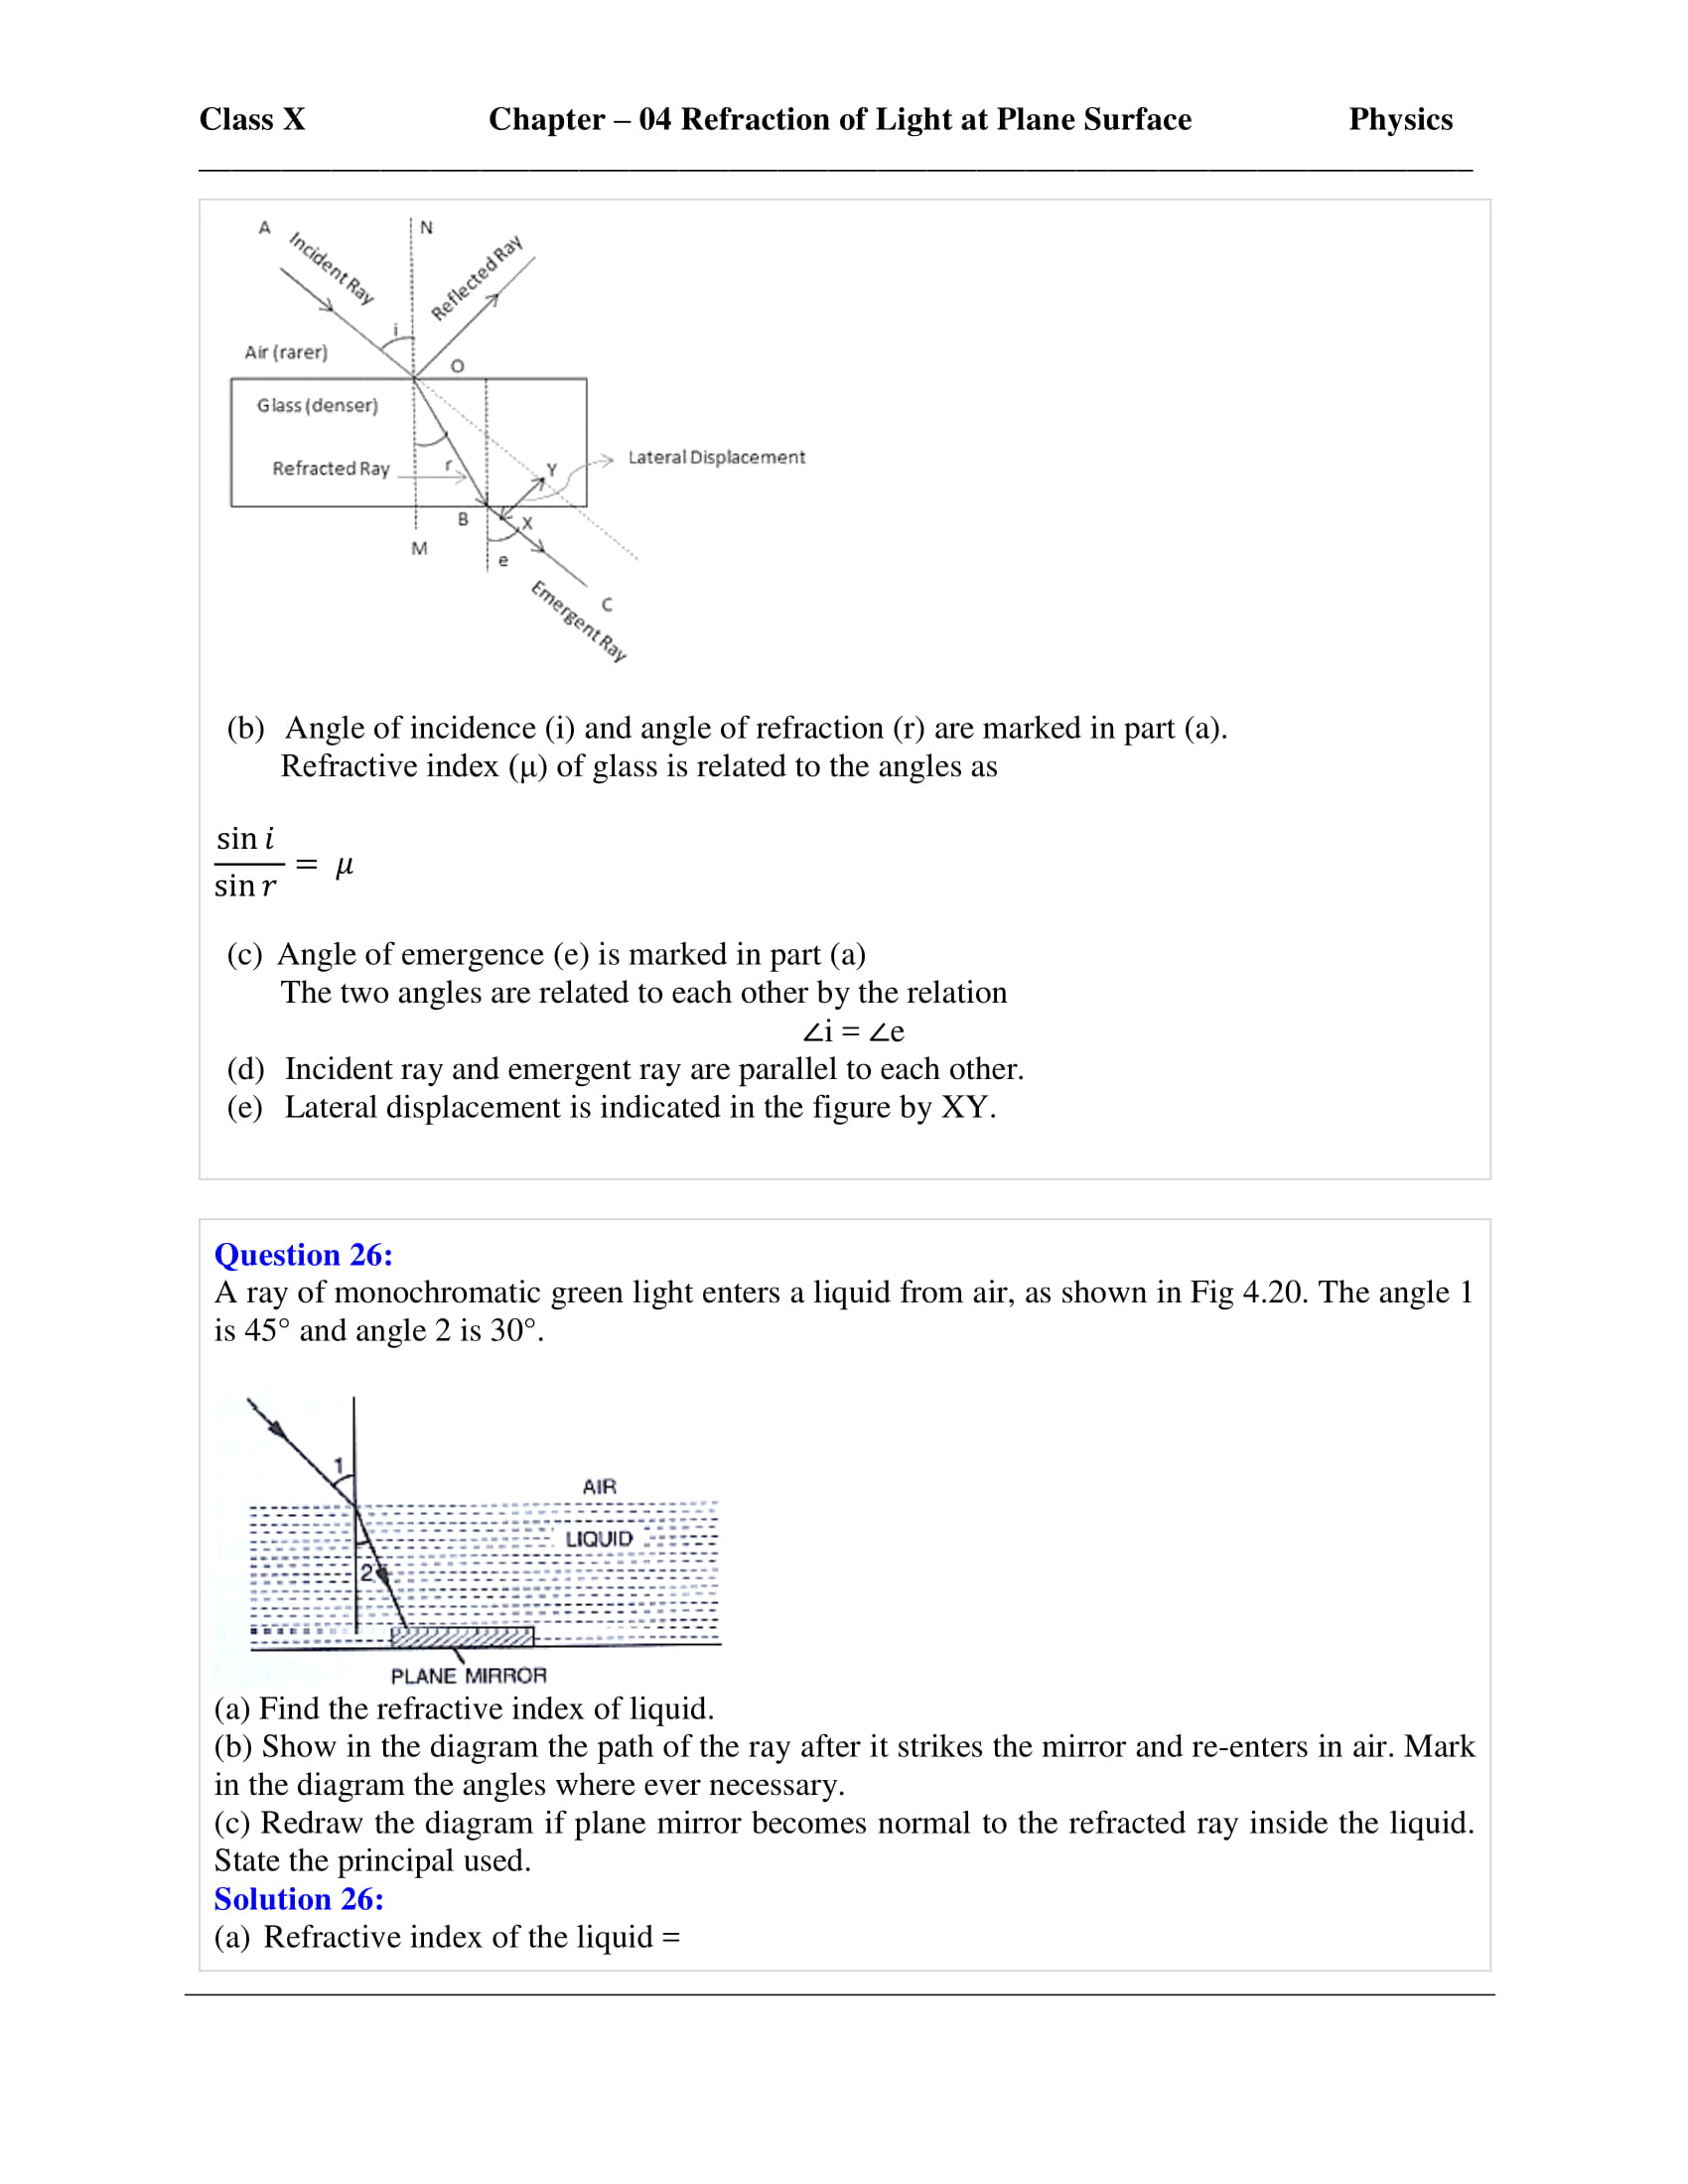 icse-selina-physics-solutions-class-10-chapter-4-refraction-of-light-at-plane-surfaces-09